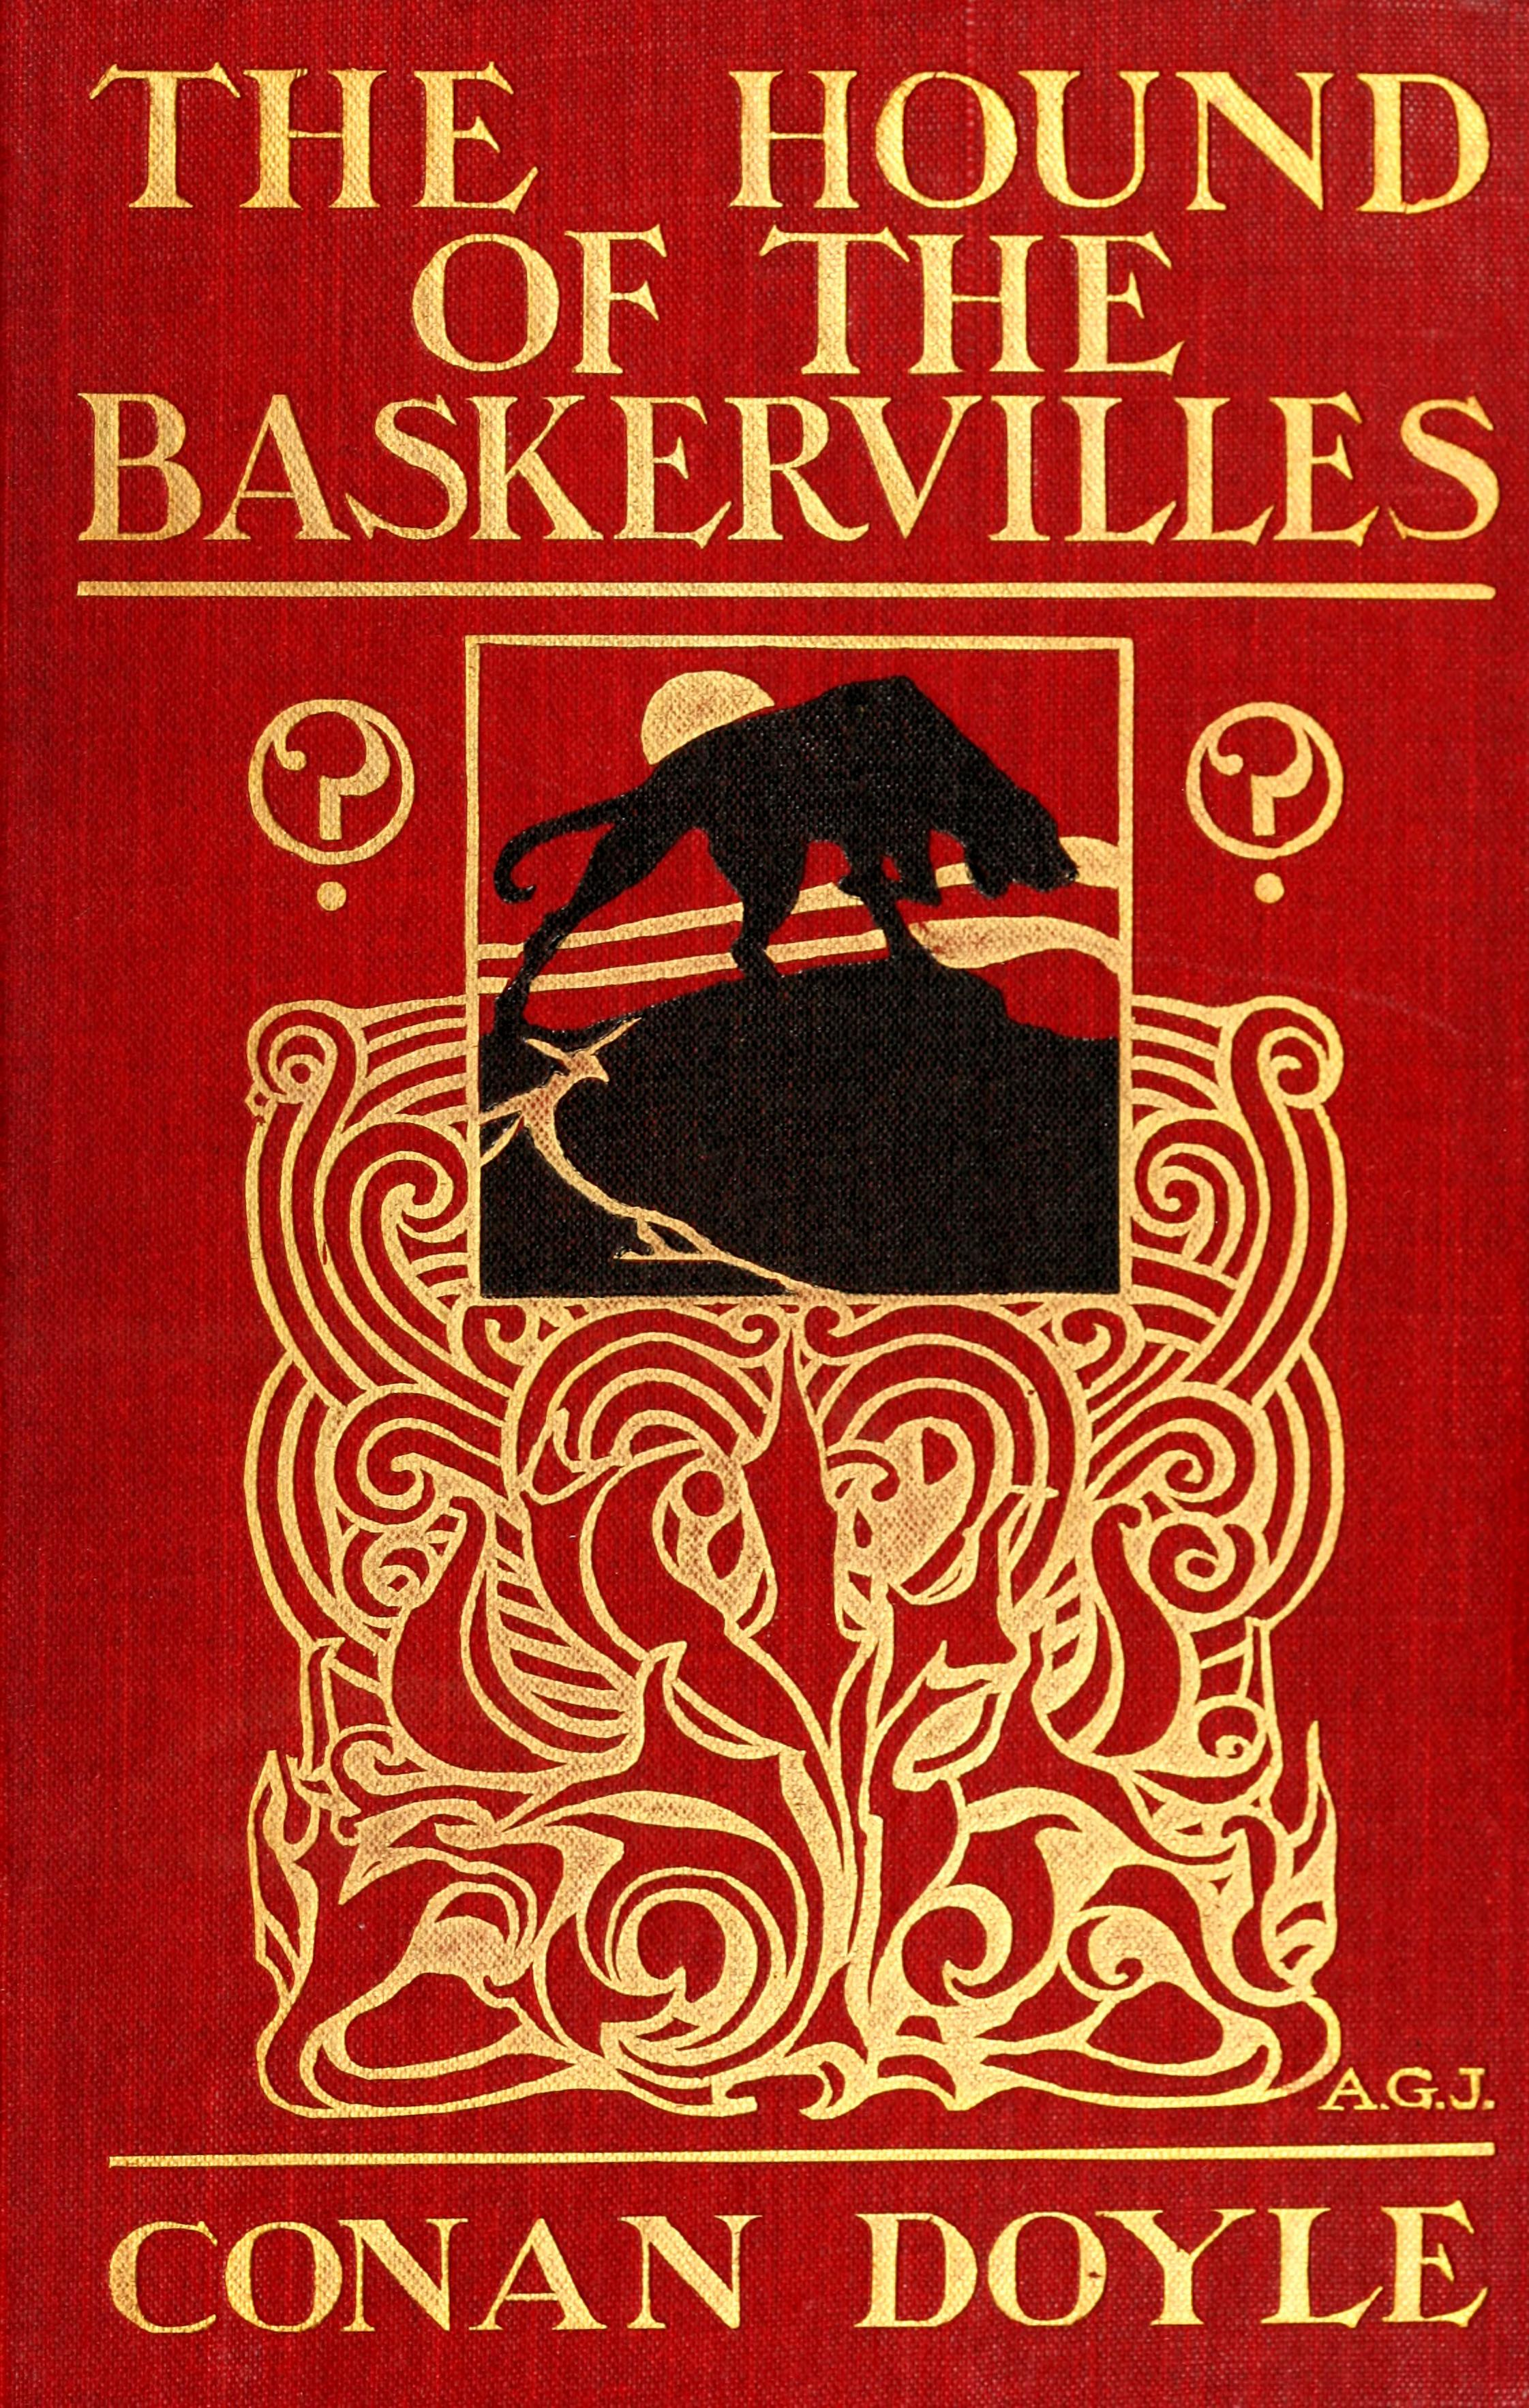 https://upload.wikimedia.org/wikipedia/commons/3/3b/Cover_(Hound_of_Baskervilles,_1902).jpg